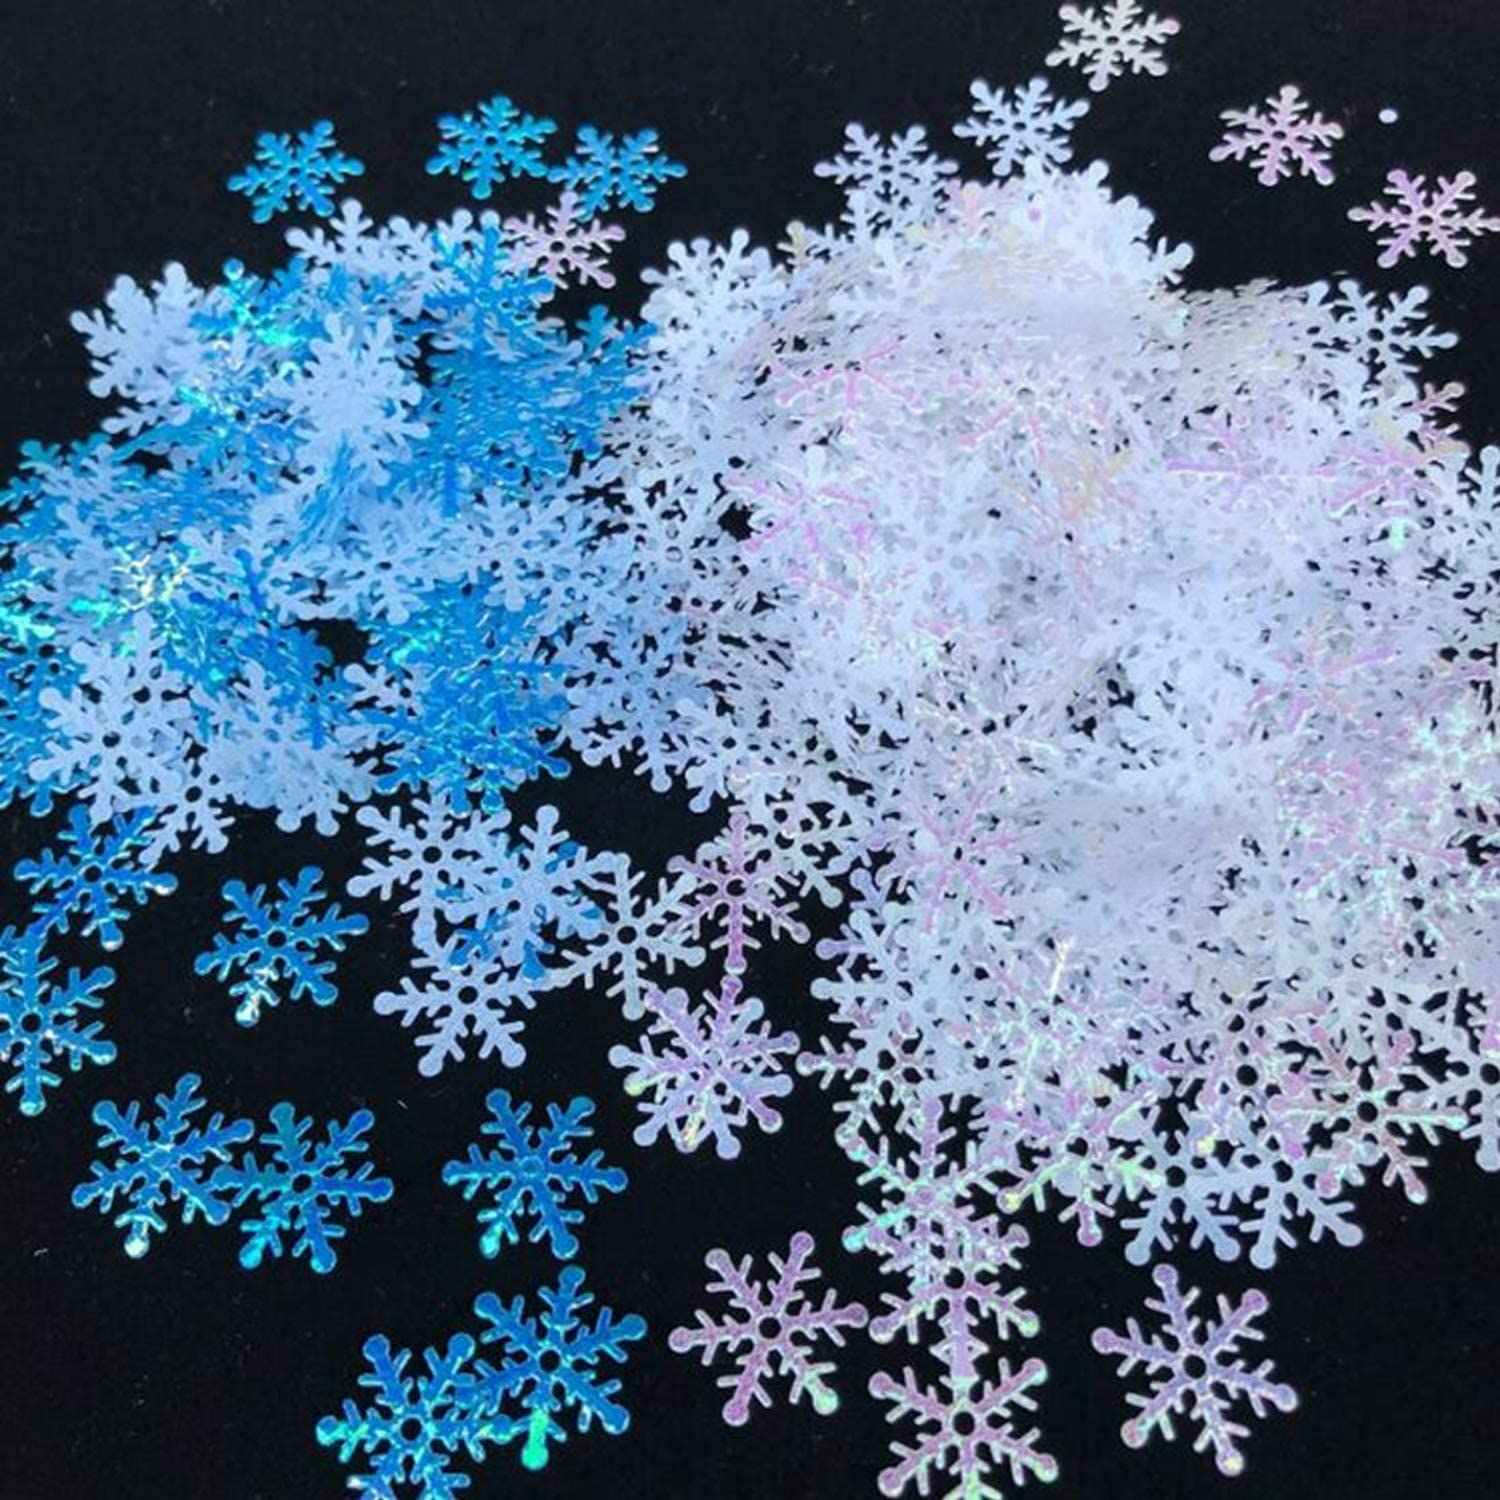 OuMuaMua 1200Pcs Snowflakes Confetti Decorations for Christmas - White and Blue Winter Confetti Snow Party Pack for Wedding Birthday Holiday Party Table Decorations Supplies